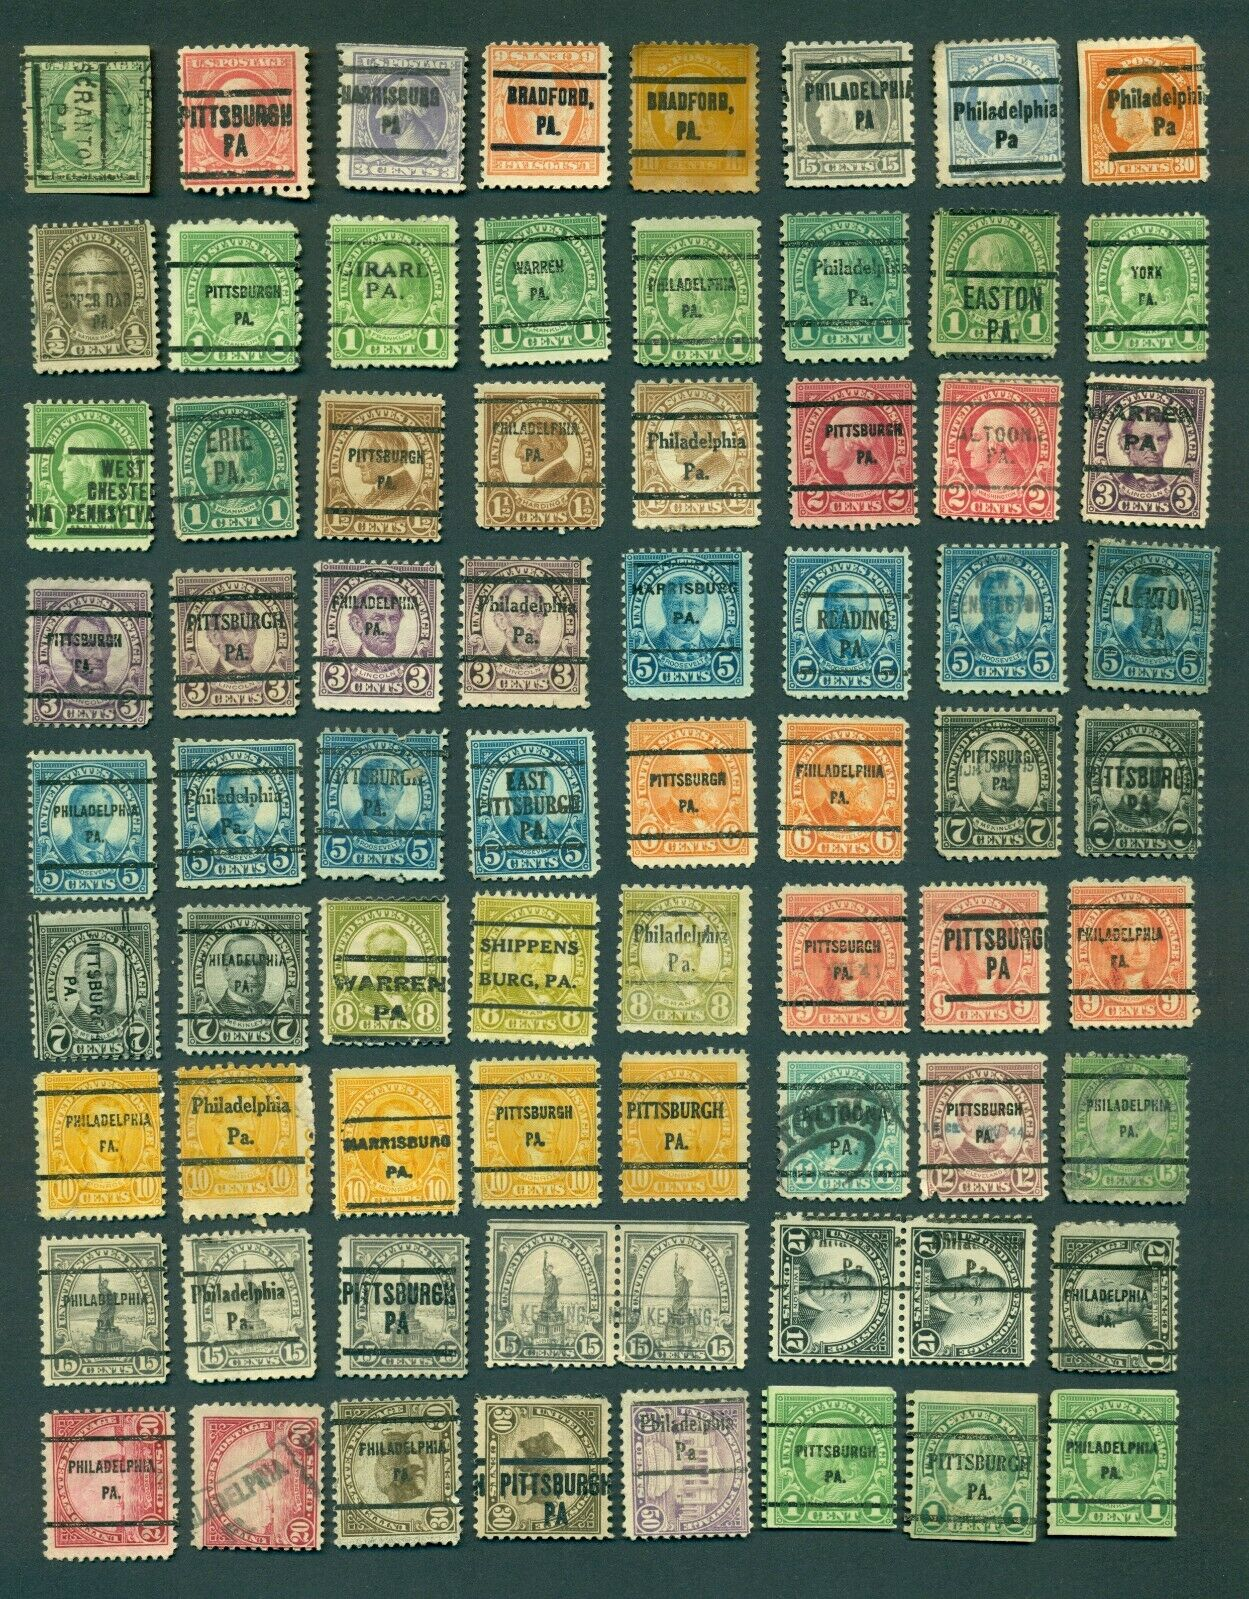 US Stamps, Collection, Large Lot, Precancels, Pennsylvania, See Scans - $6.49